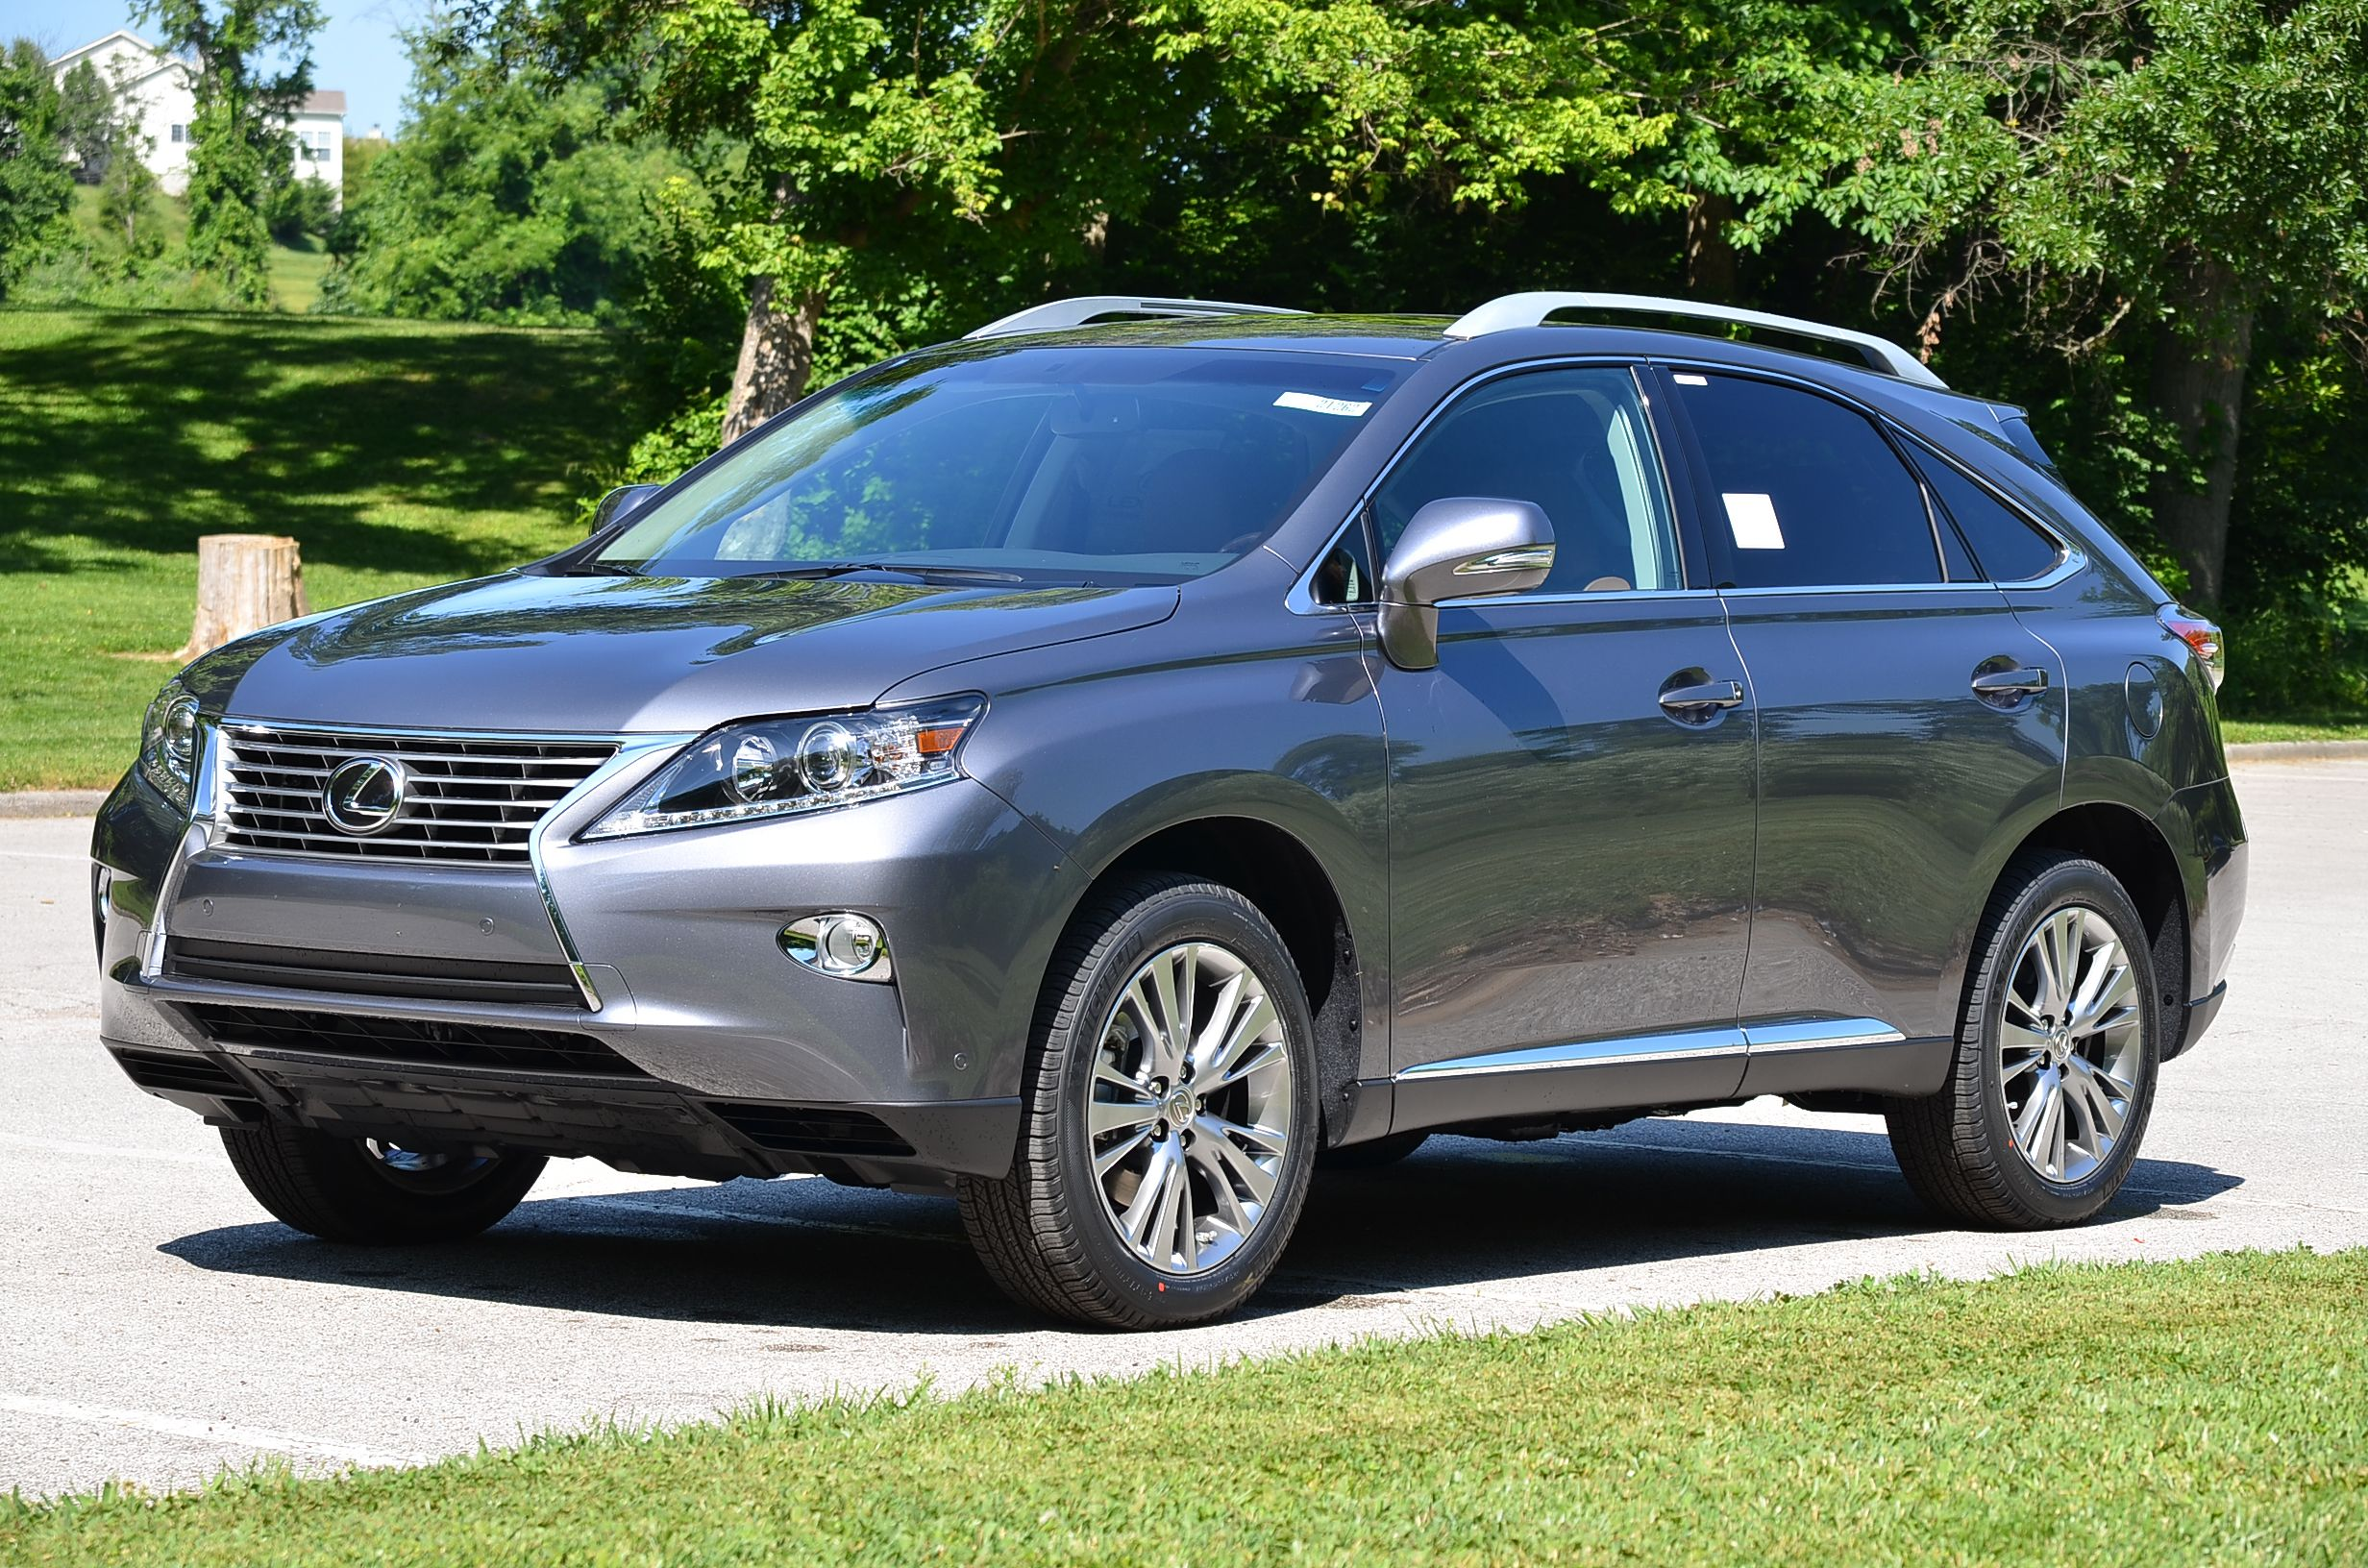 lease sport research gray large groovecar awd suv composite rx pearl f nebula lexus